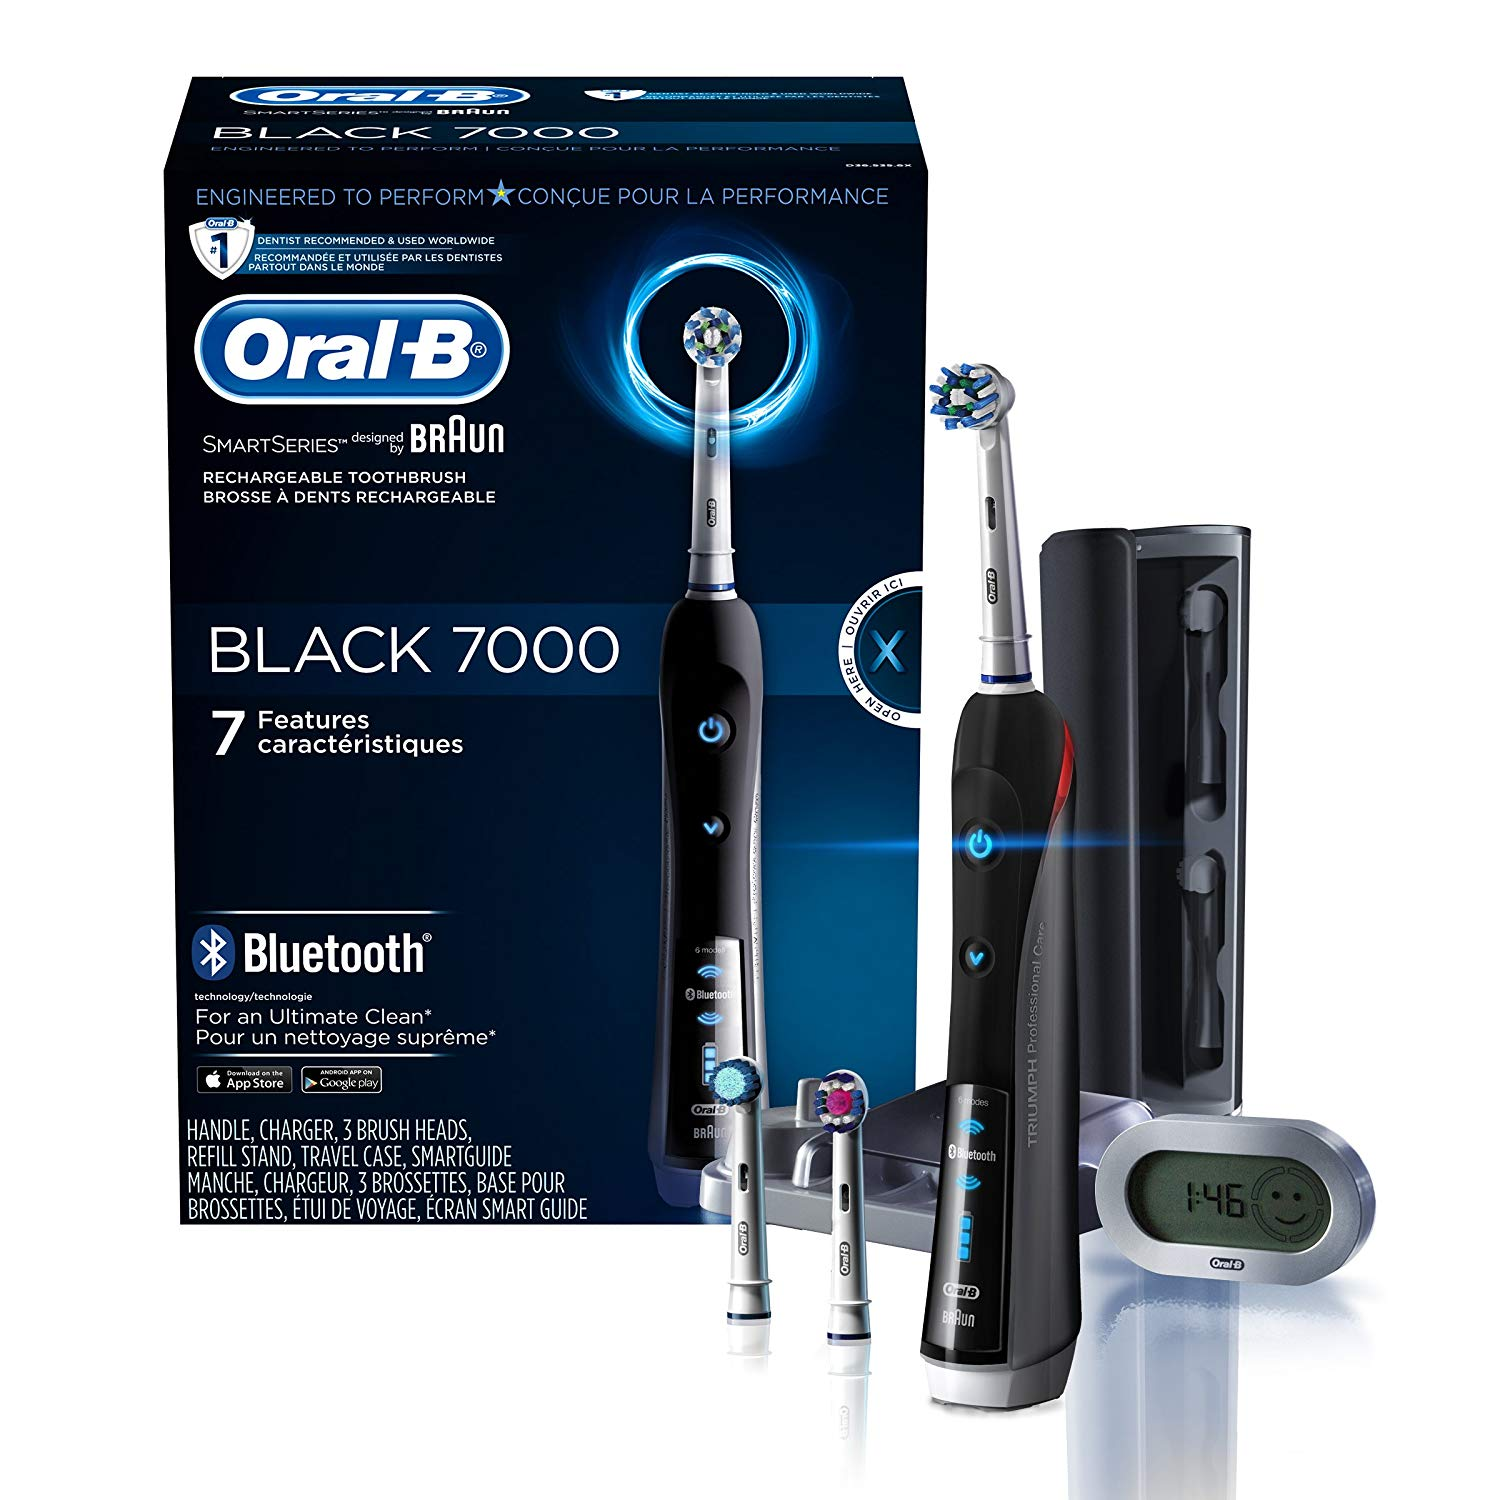 Electric Toothbrush, Oral-B Pro 7000 SmartSeries Black Electronic Power Rechargeable Toothbrush with Bluetooth Connectivity Powered by Braun (Packaging May Vary)